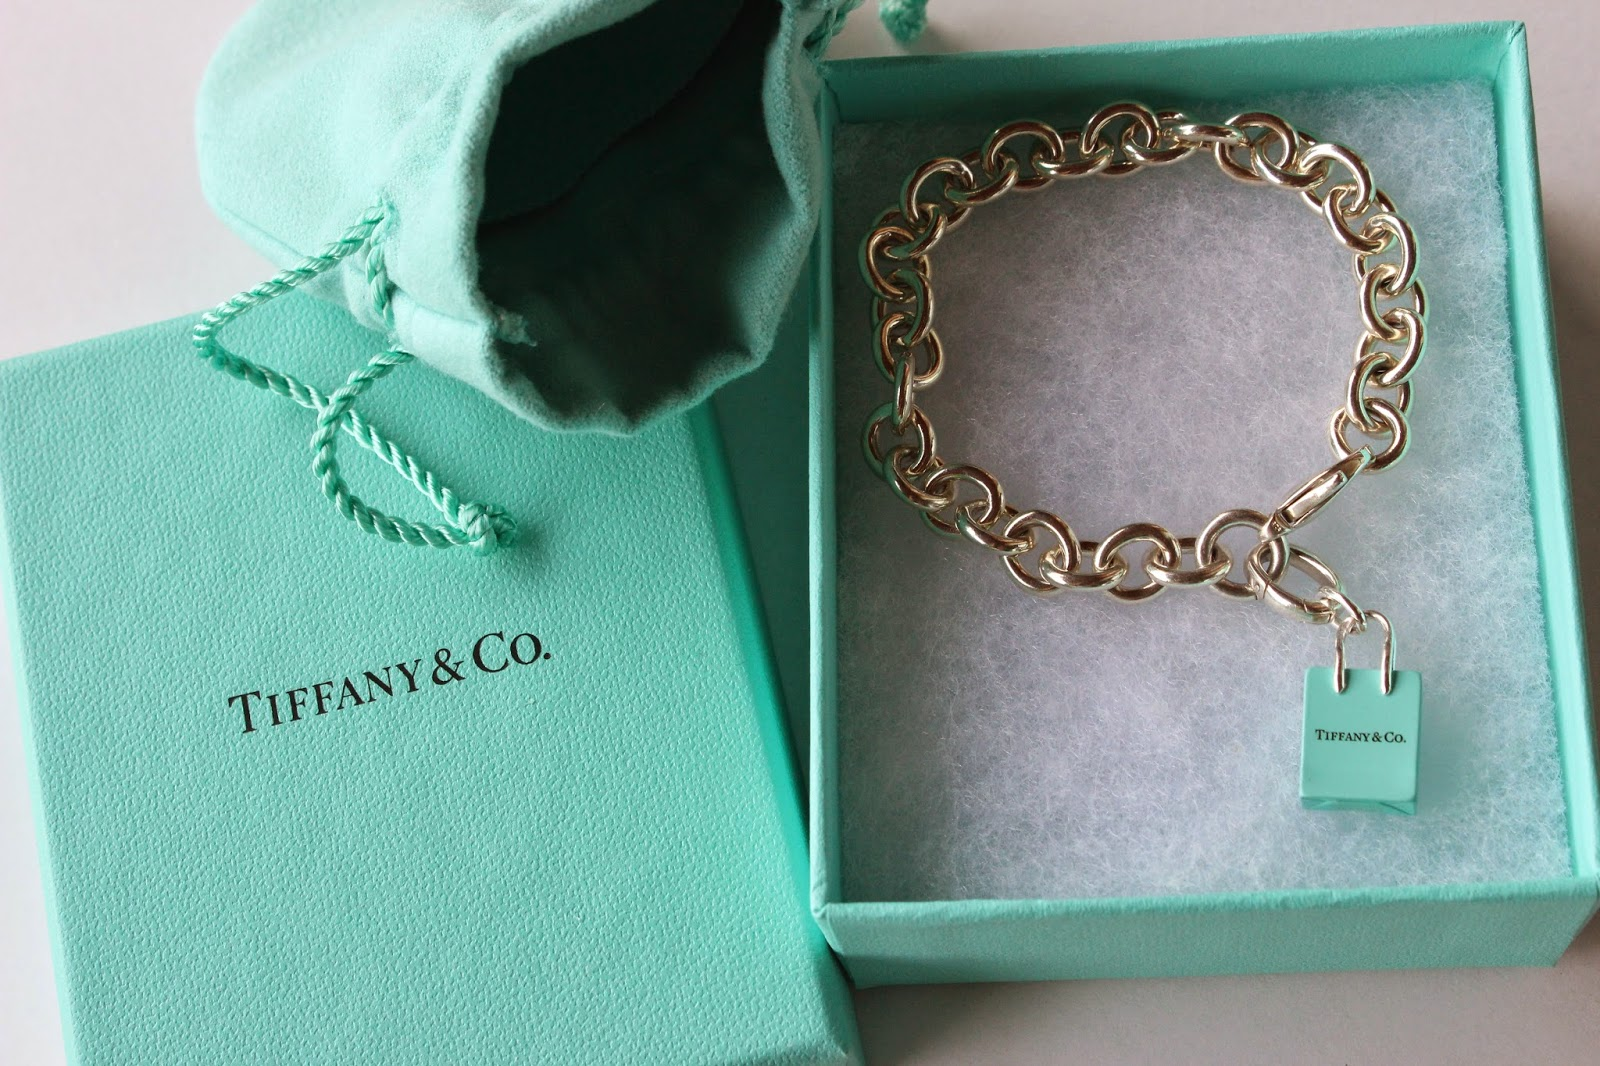 02bea1e3a Ever since I was 13 years old and first heard about Tiffany & Co and their  charm bracelets, all I dreamed about was having one of my own.